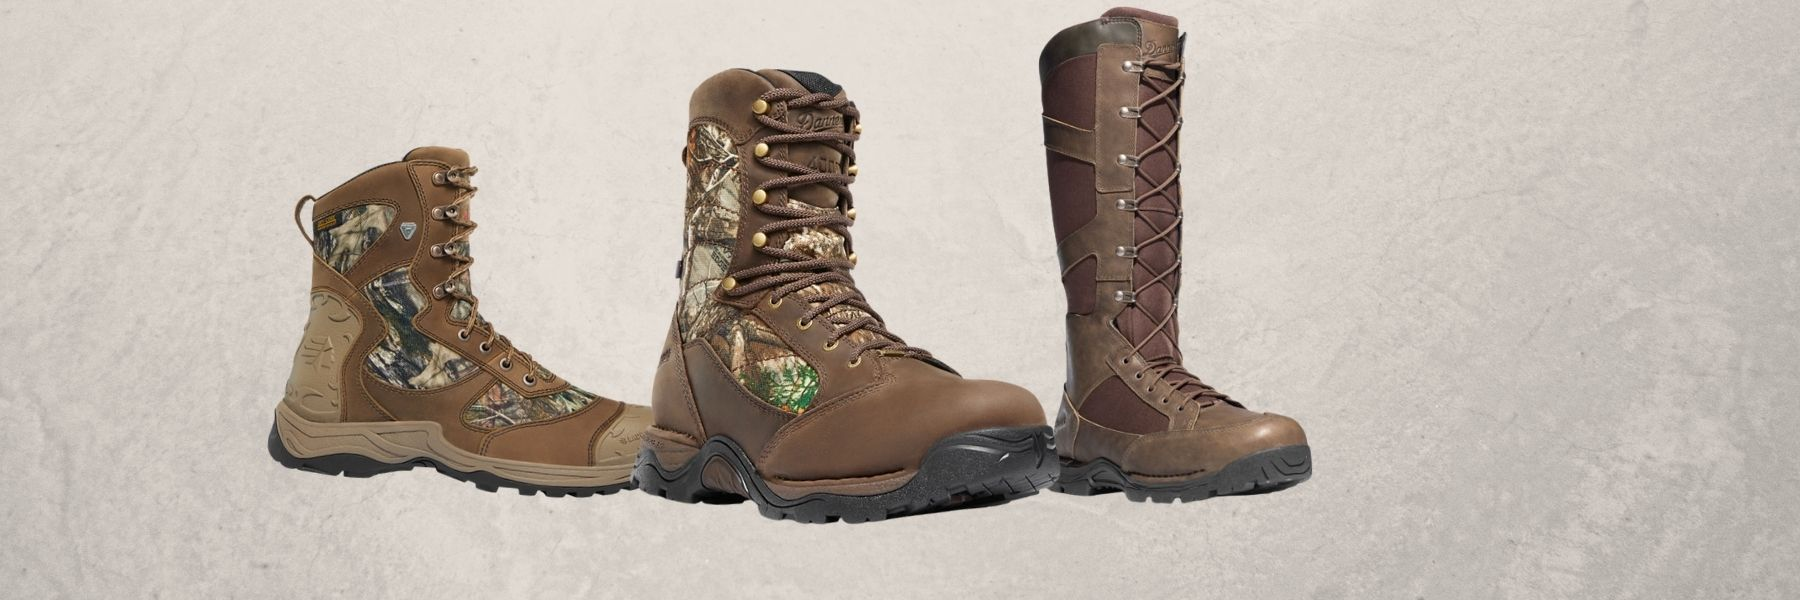 three boots for hunting